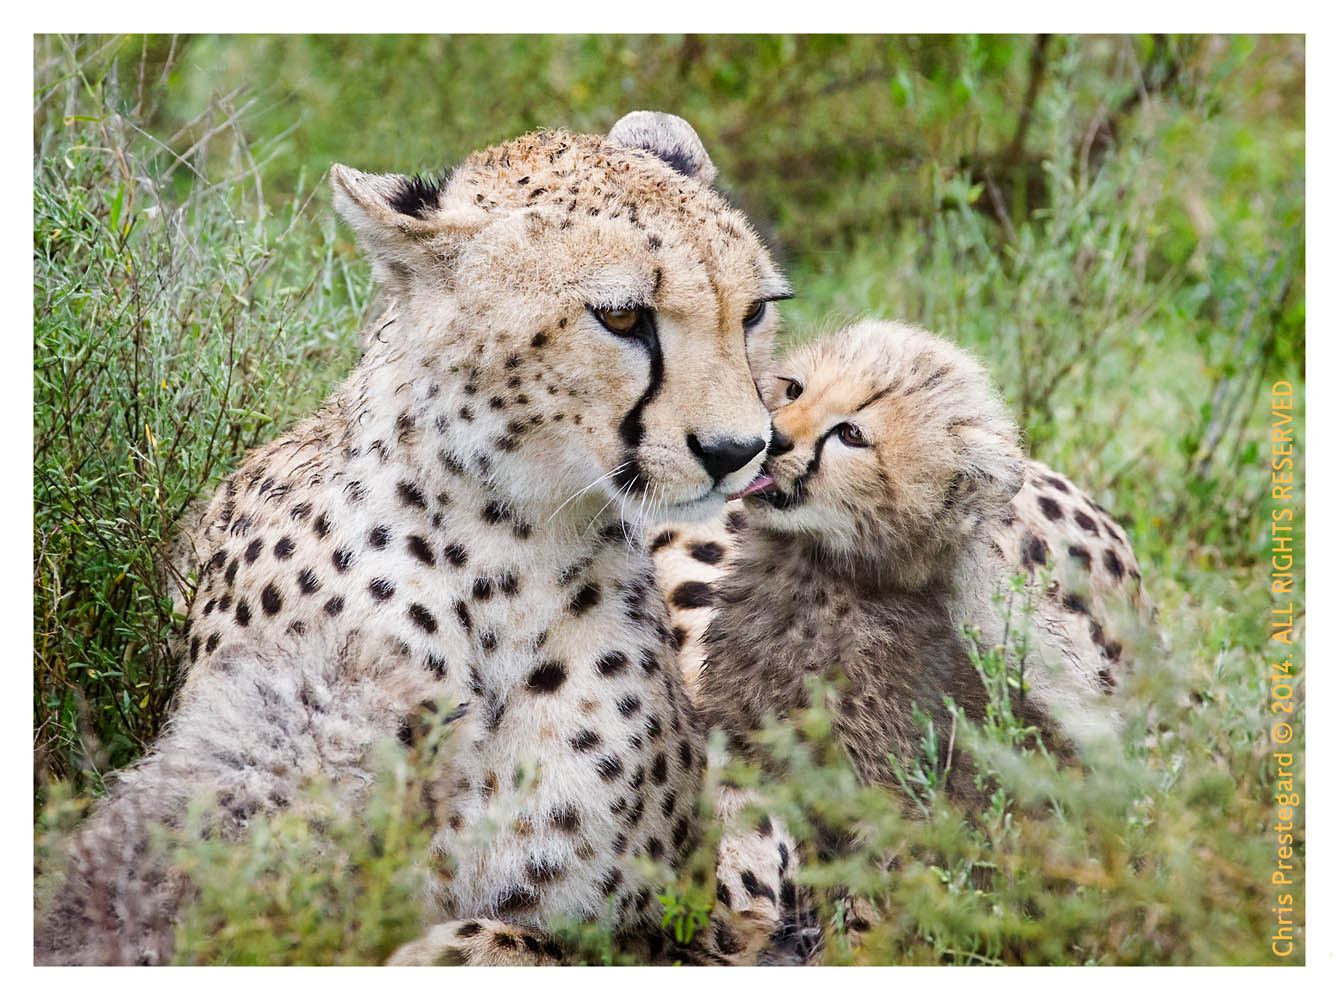 cheetah1720-Apr7-2014